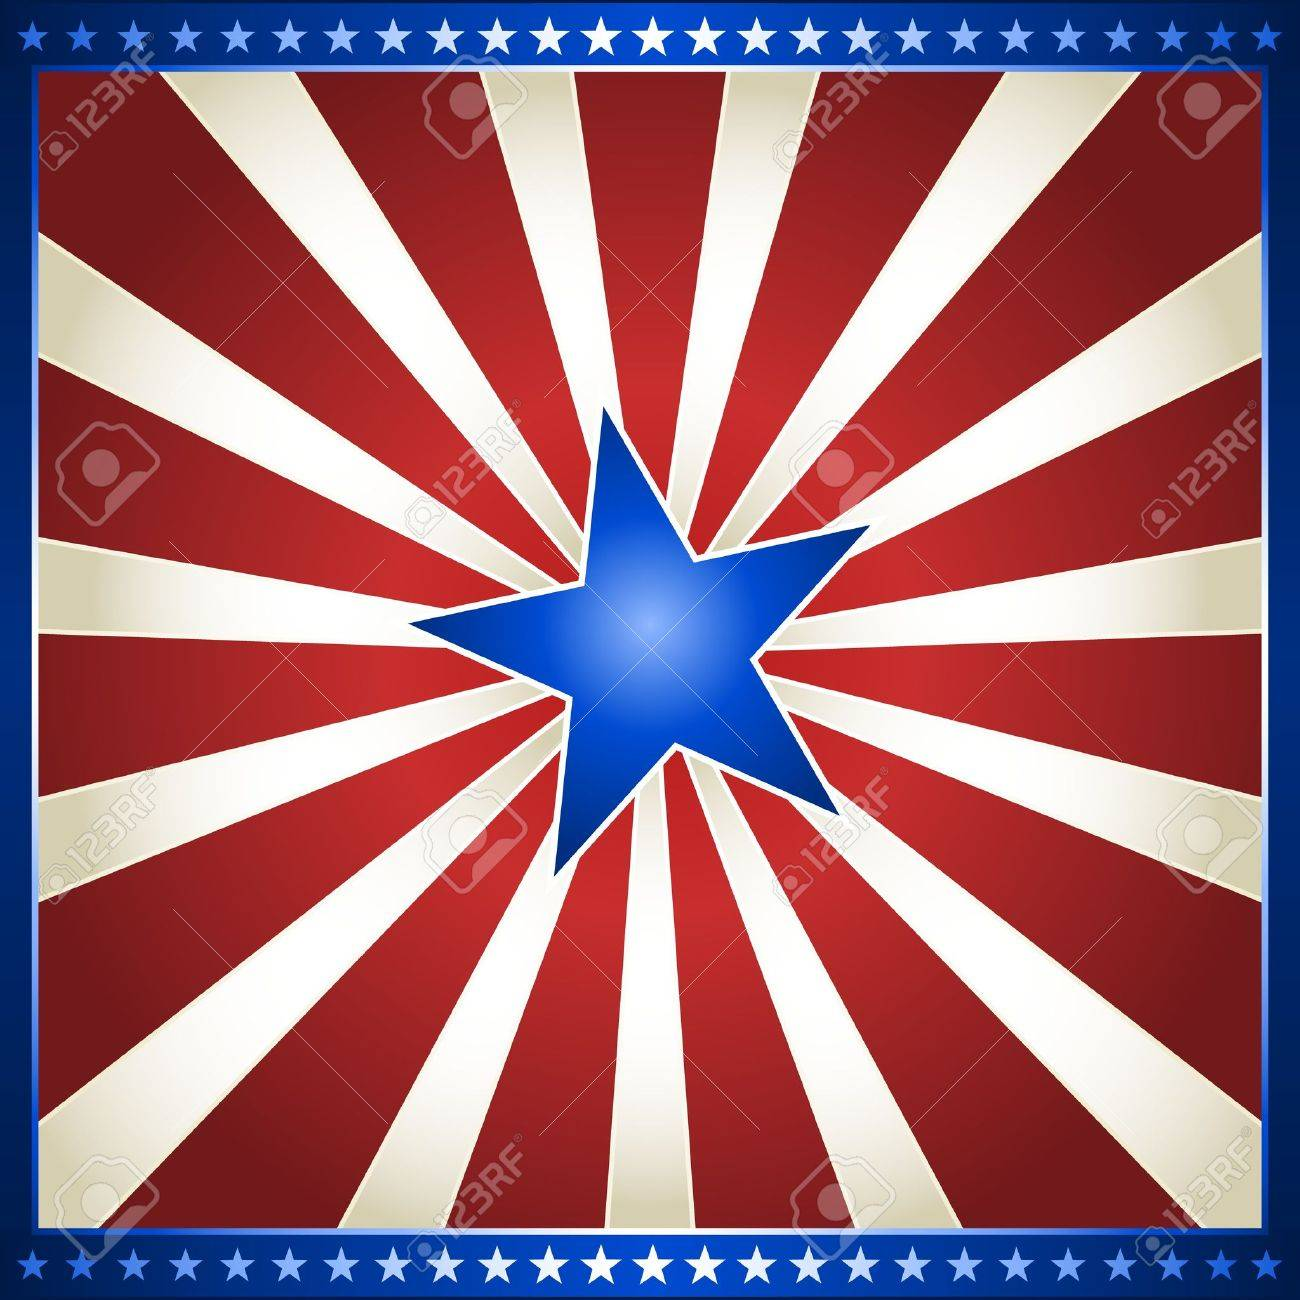 usa 4th of july red and white star burst with shiny blue centre